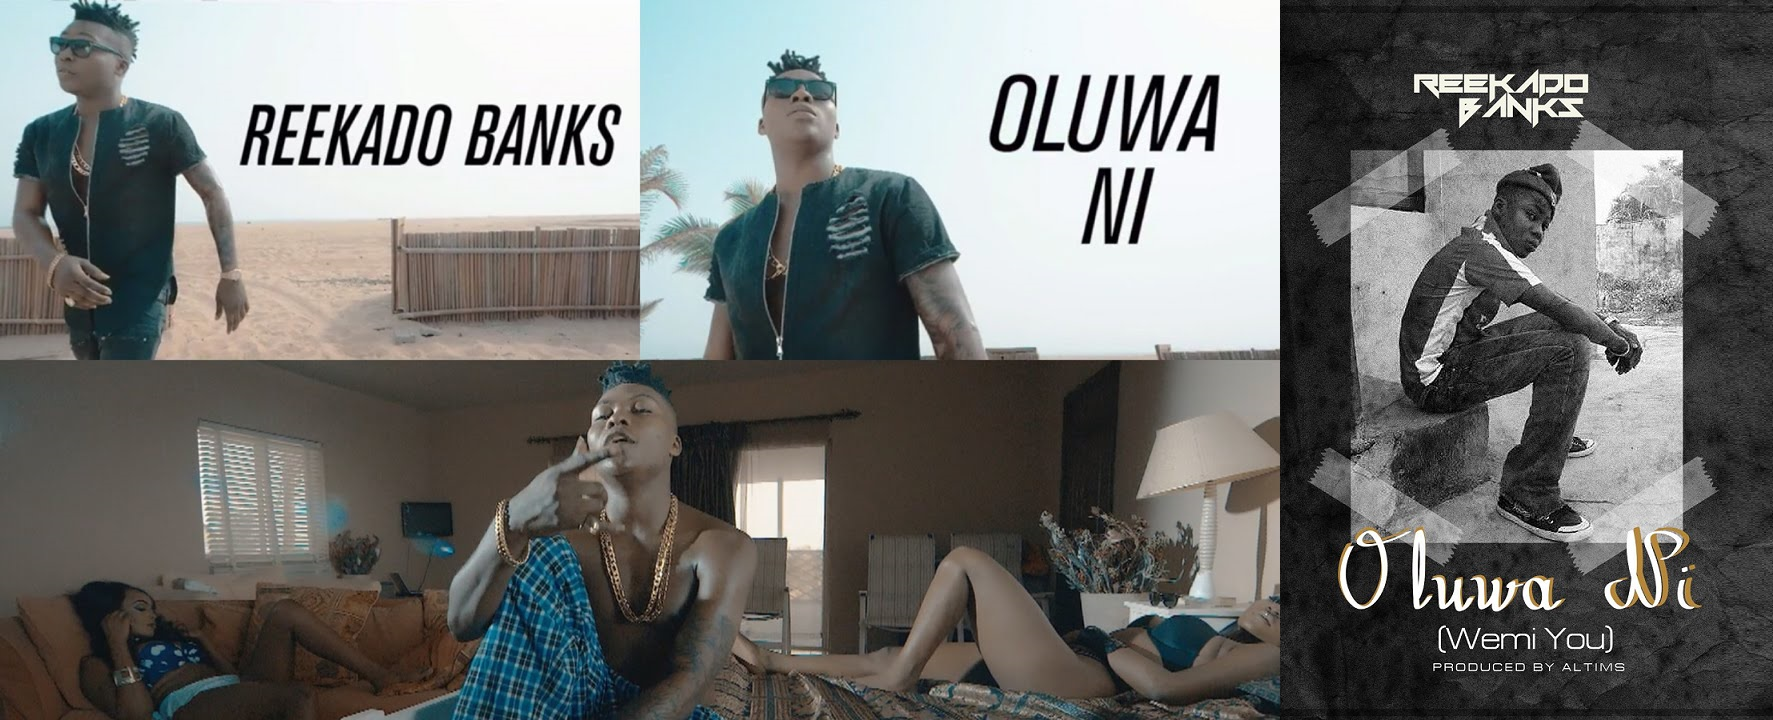 Reekado Banks Oluwa Ni Video